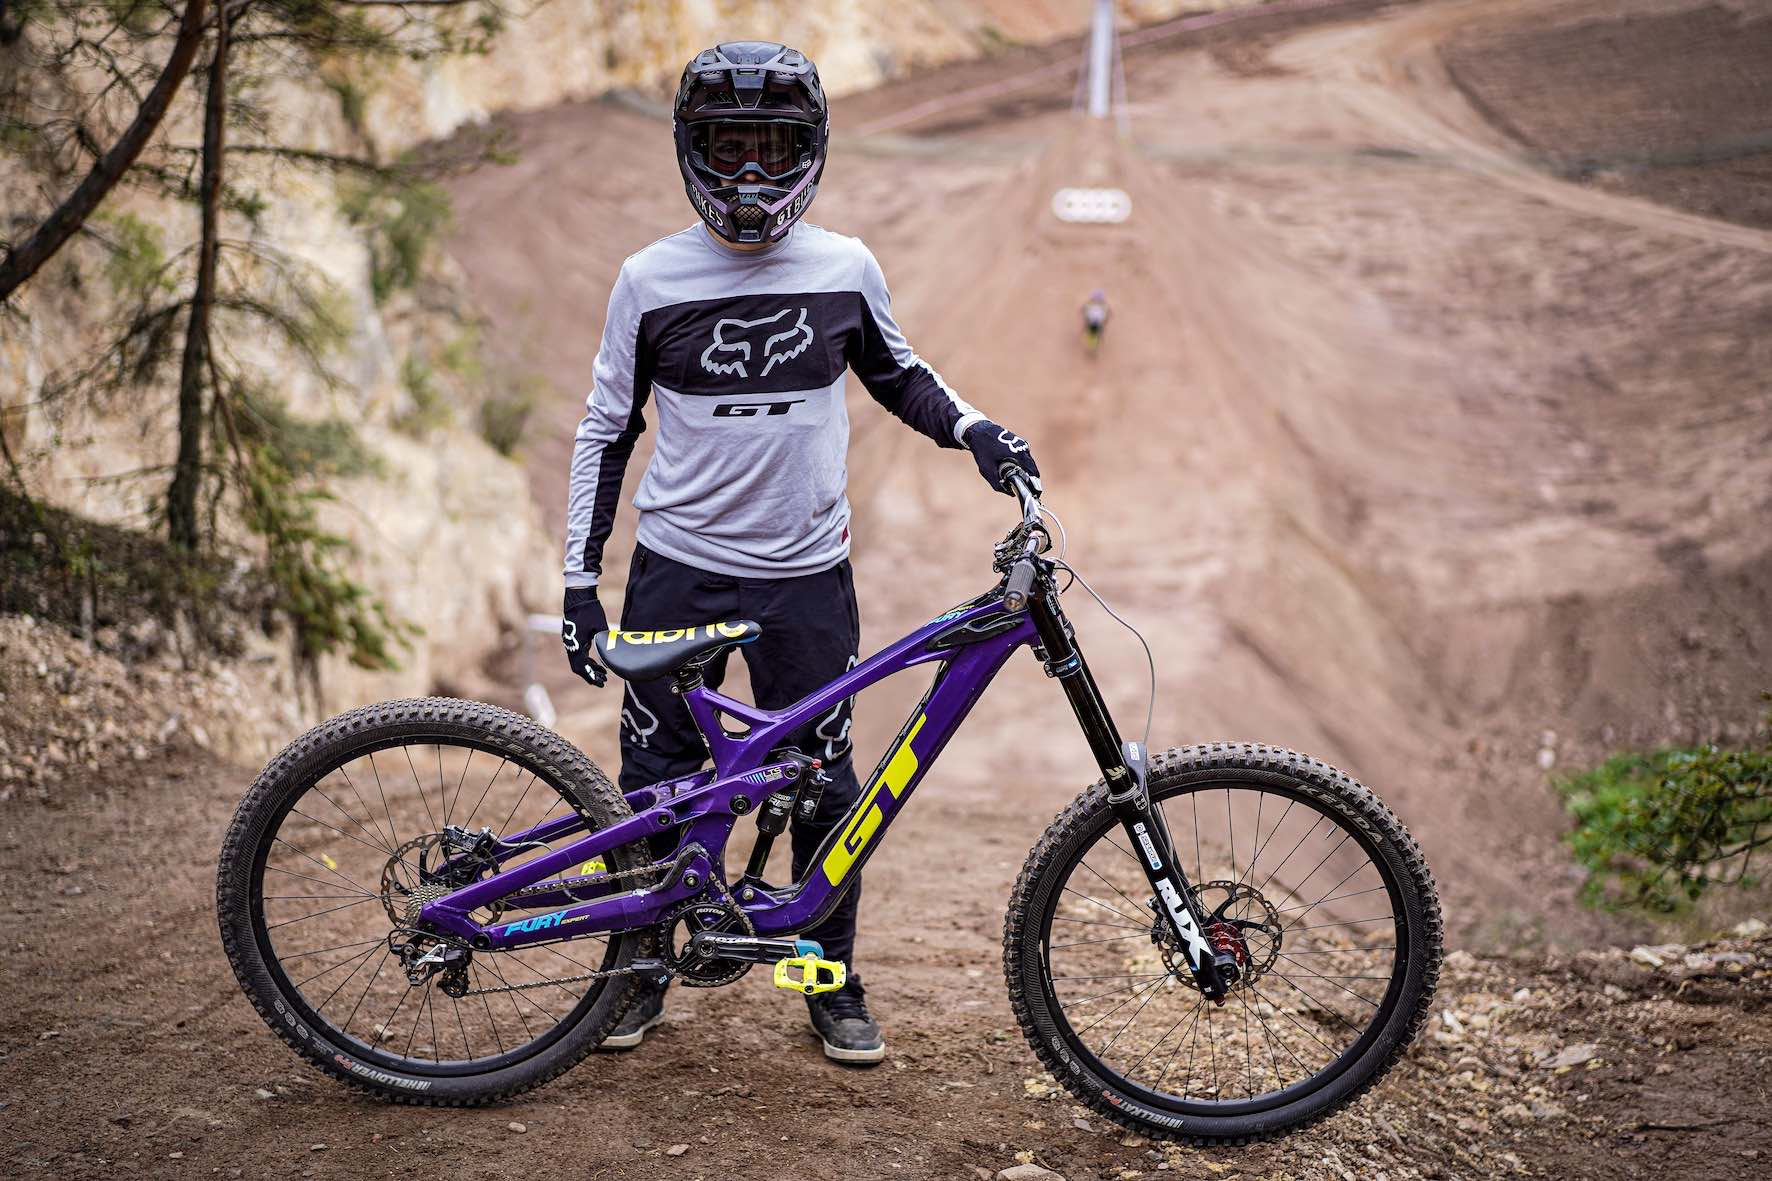 Tom Isted's bike at the 2019 Audi Nines MTB event